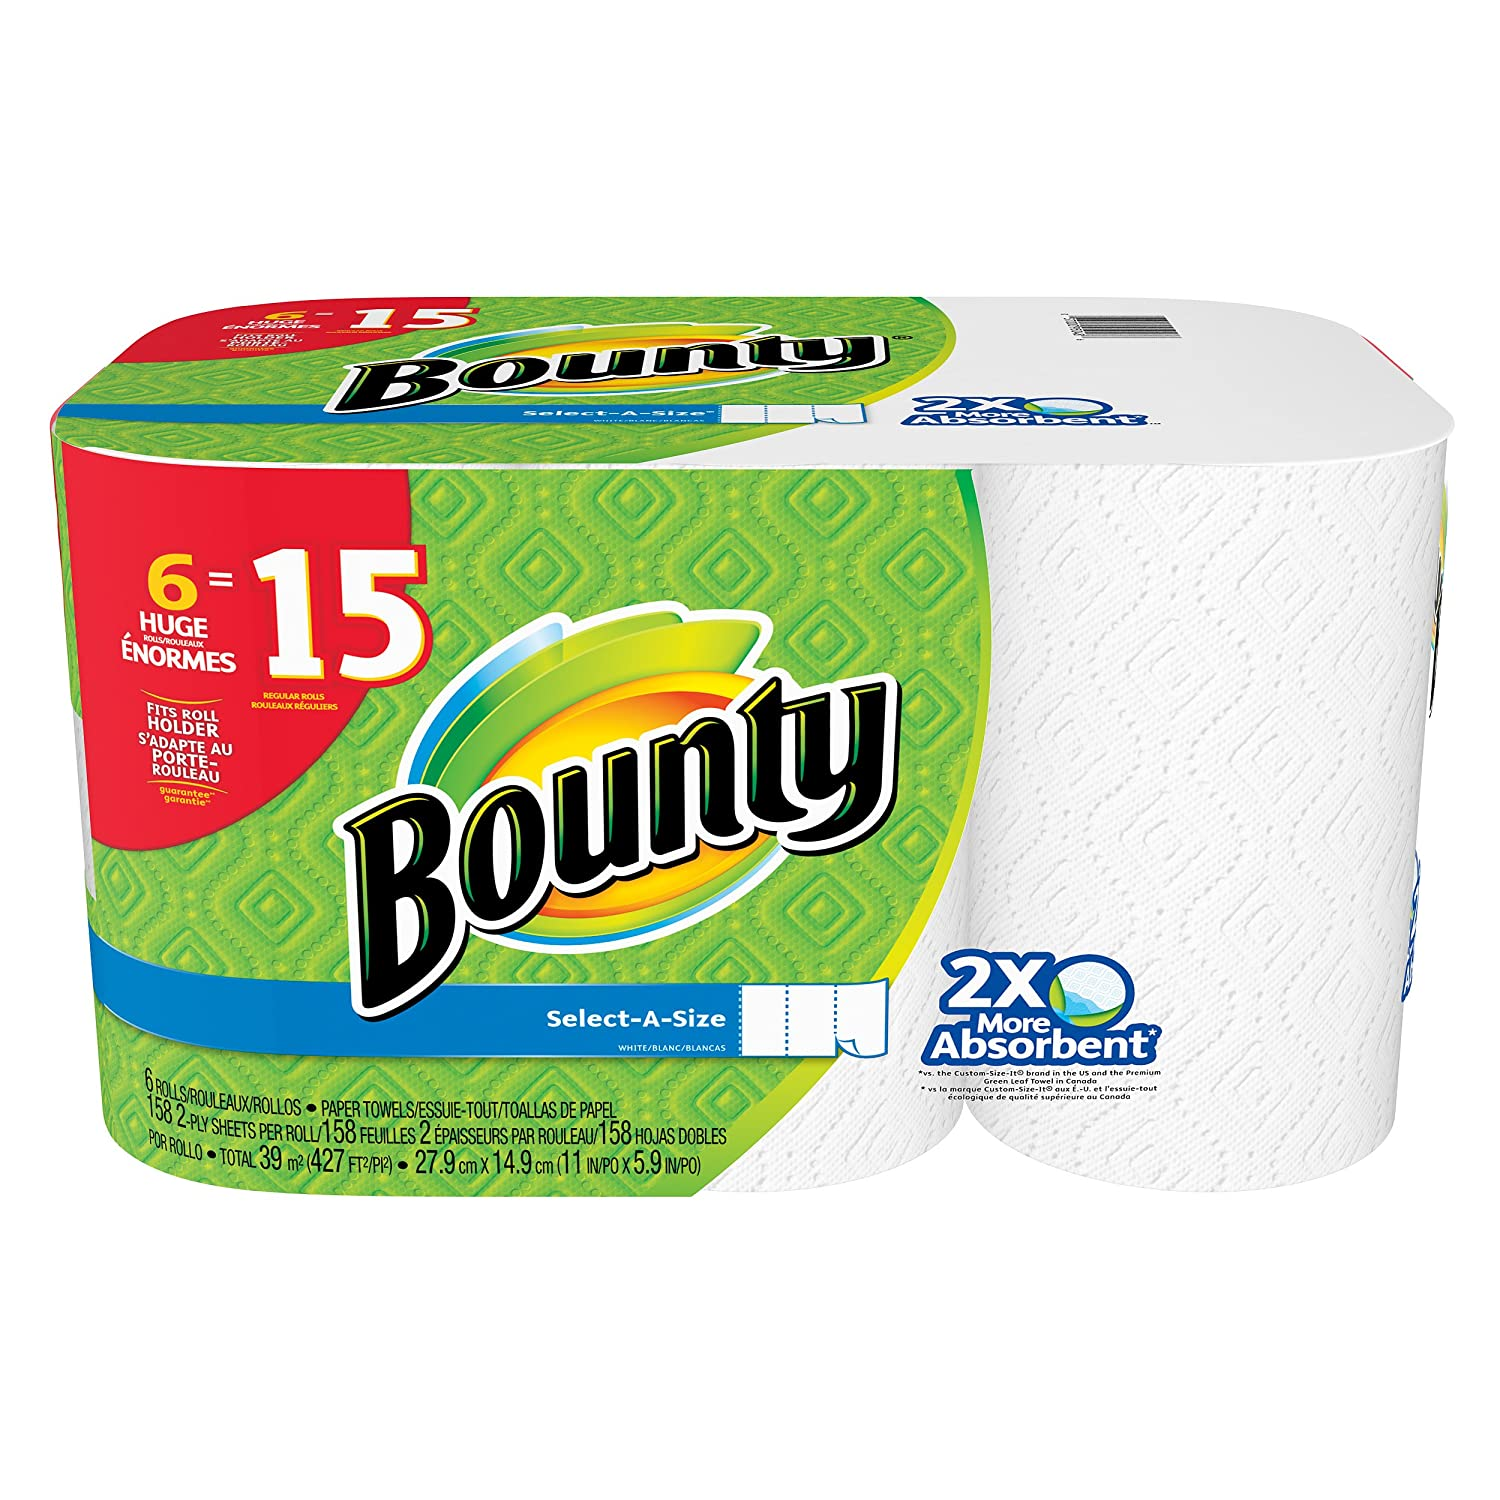 Amazon.com: Bounty Paper Towels, Select-a-size, Huge Rolls, White, 6 Count: Health & Personal Care